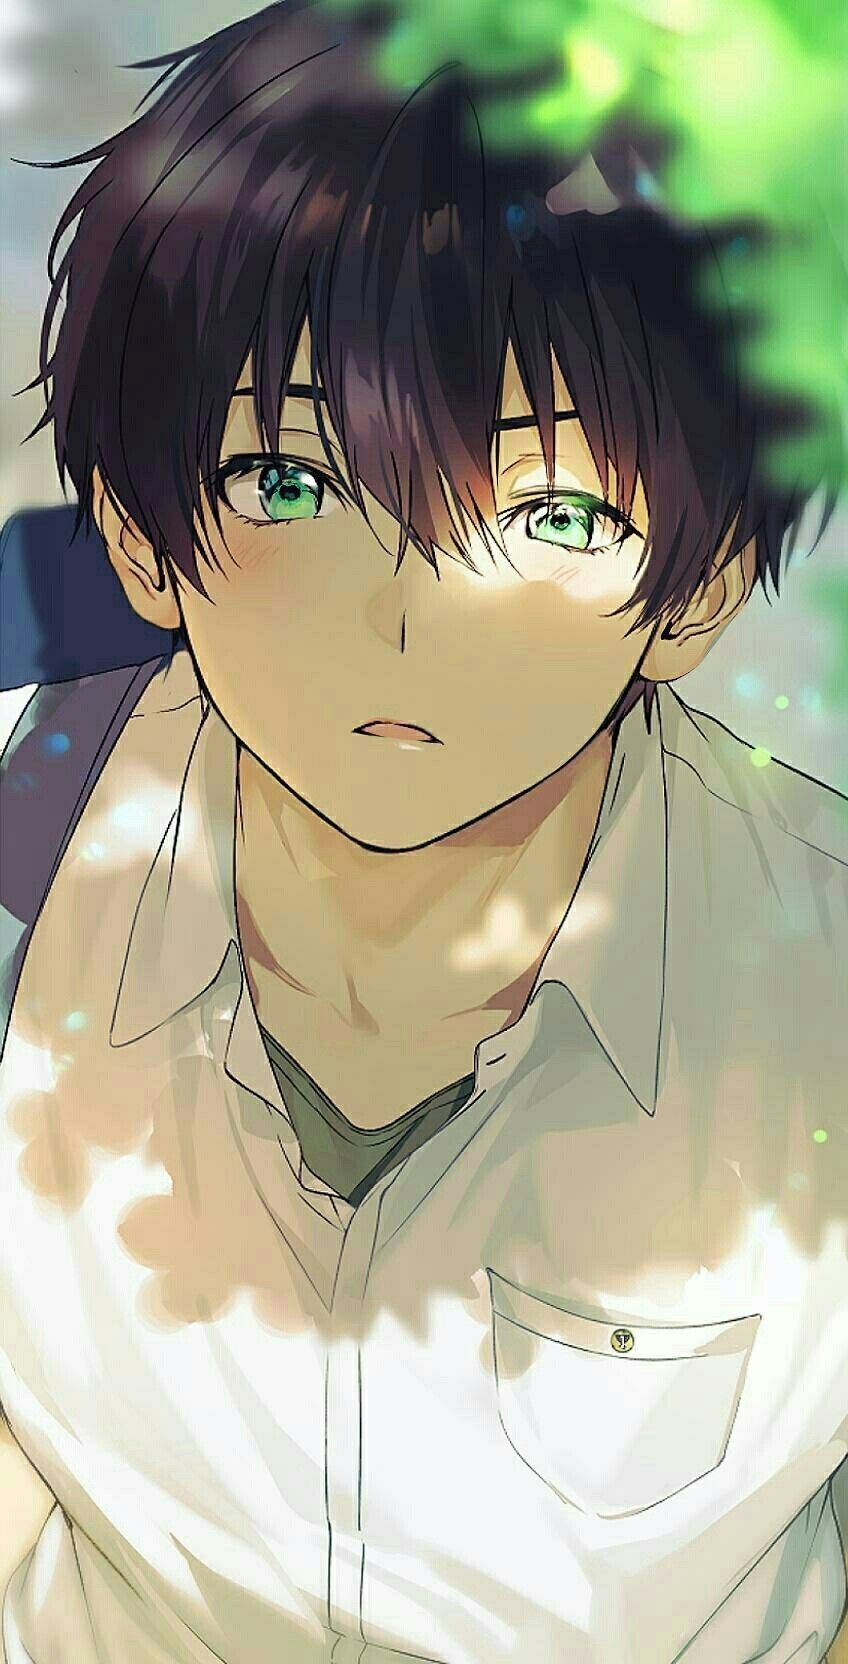 Handsome Anime Characters Hd Wallpapers Wallpaper Cave